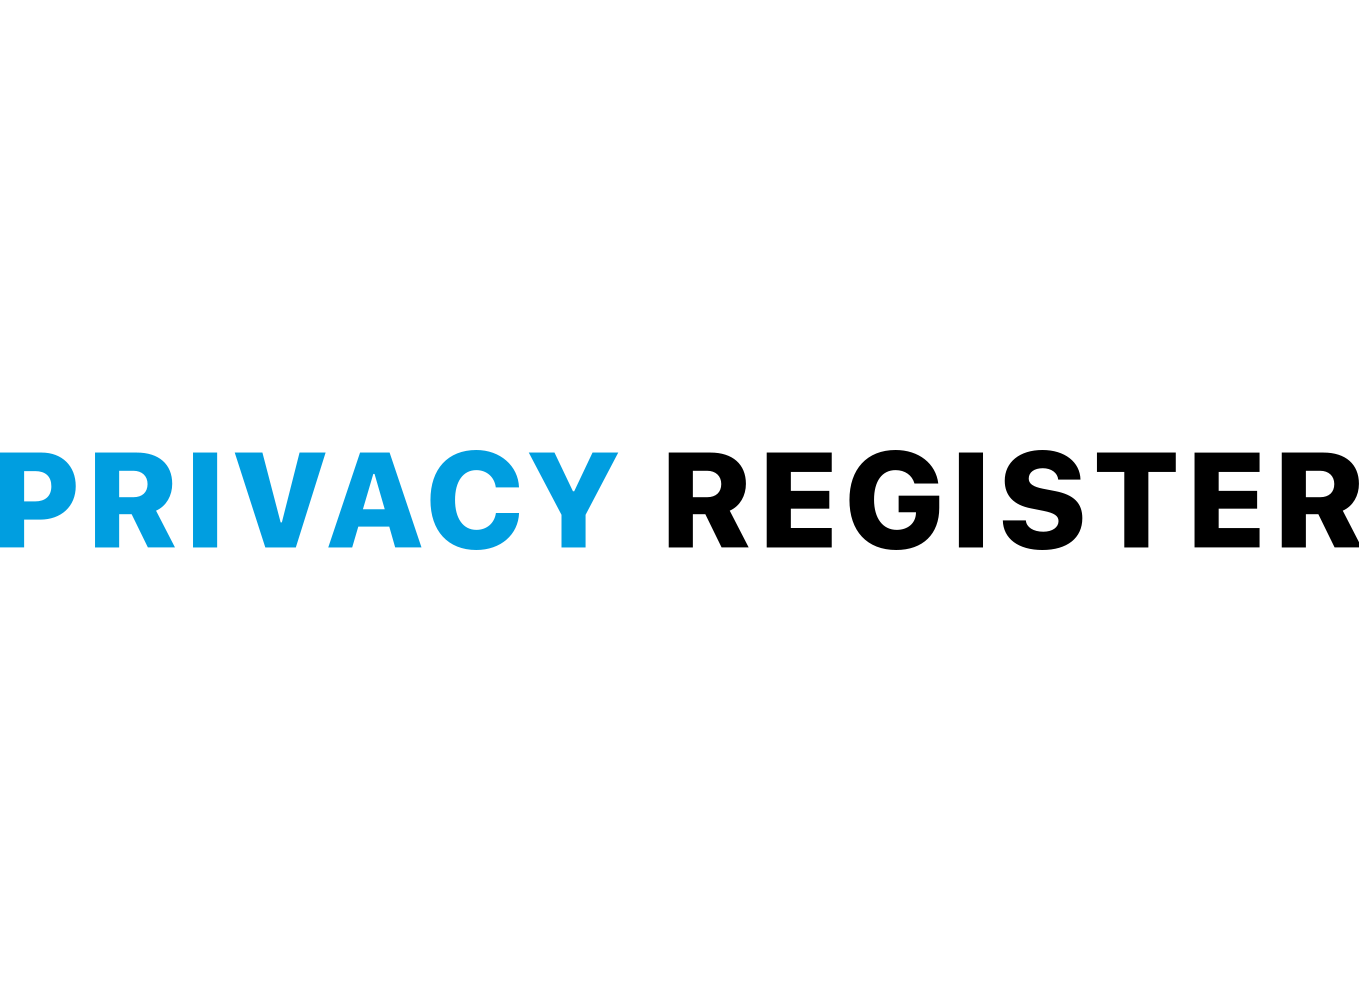 Privacy Register logo